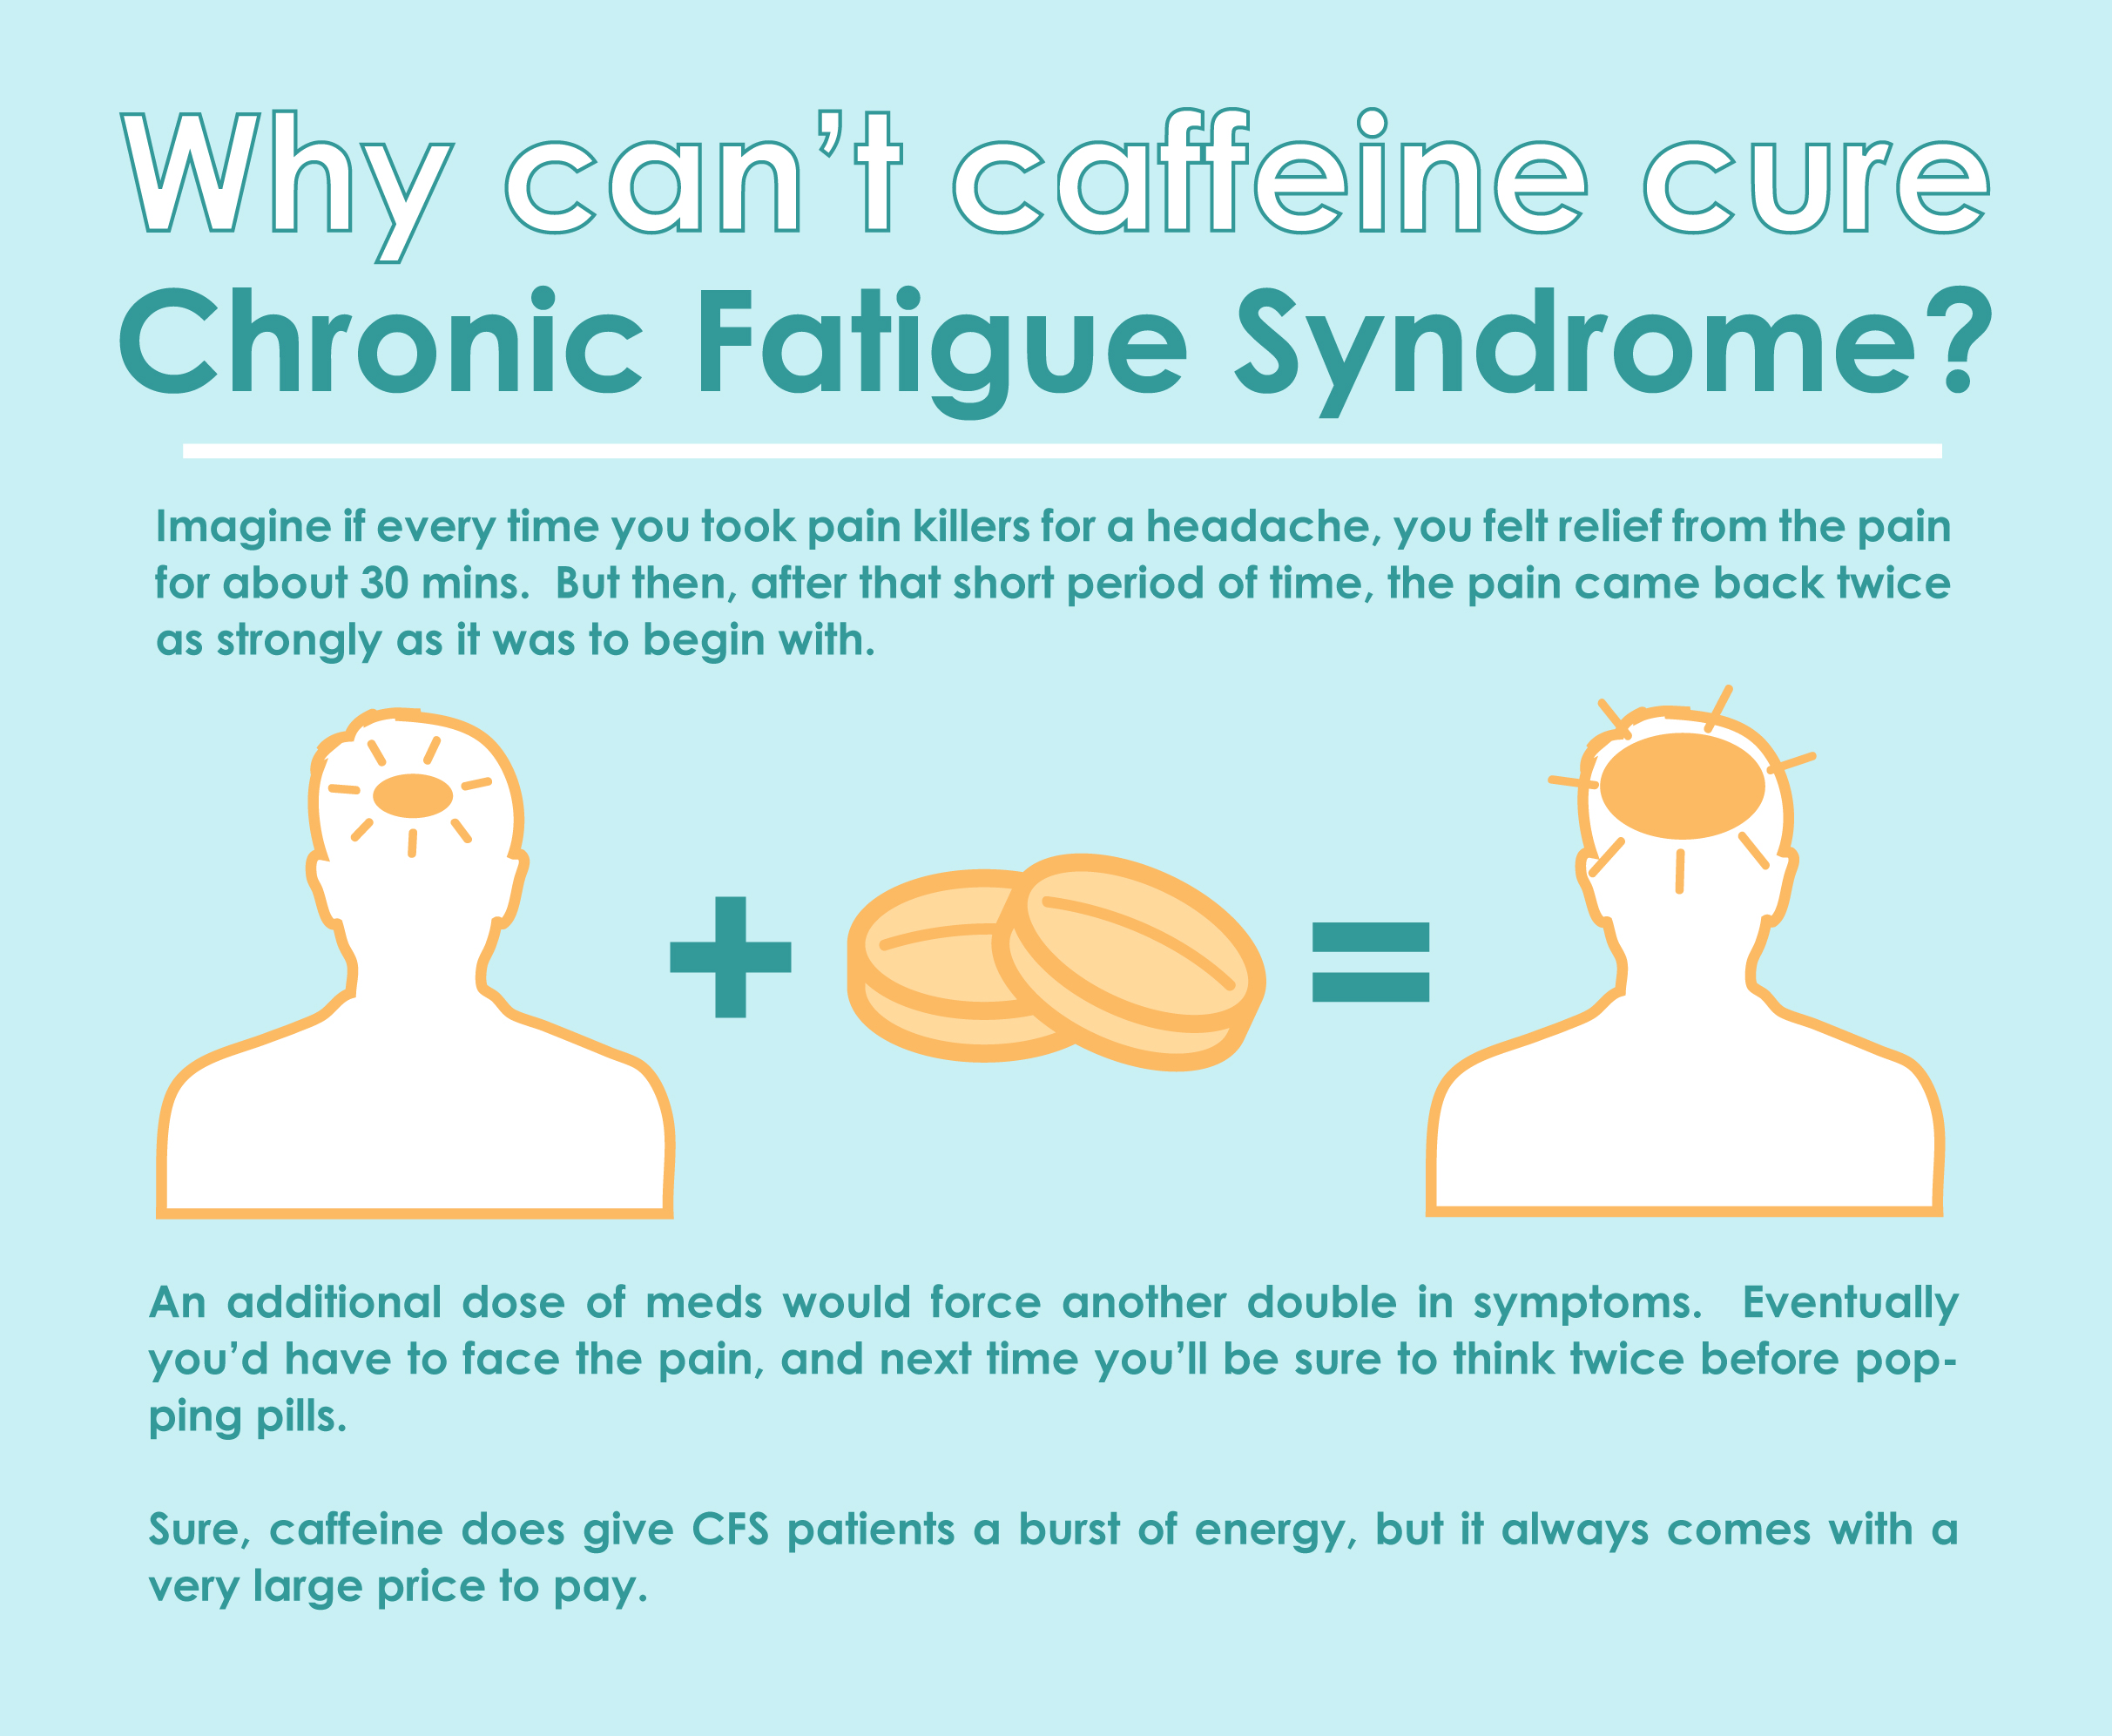 why can't caffeine cure chronic fatigue syndrome